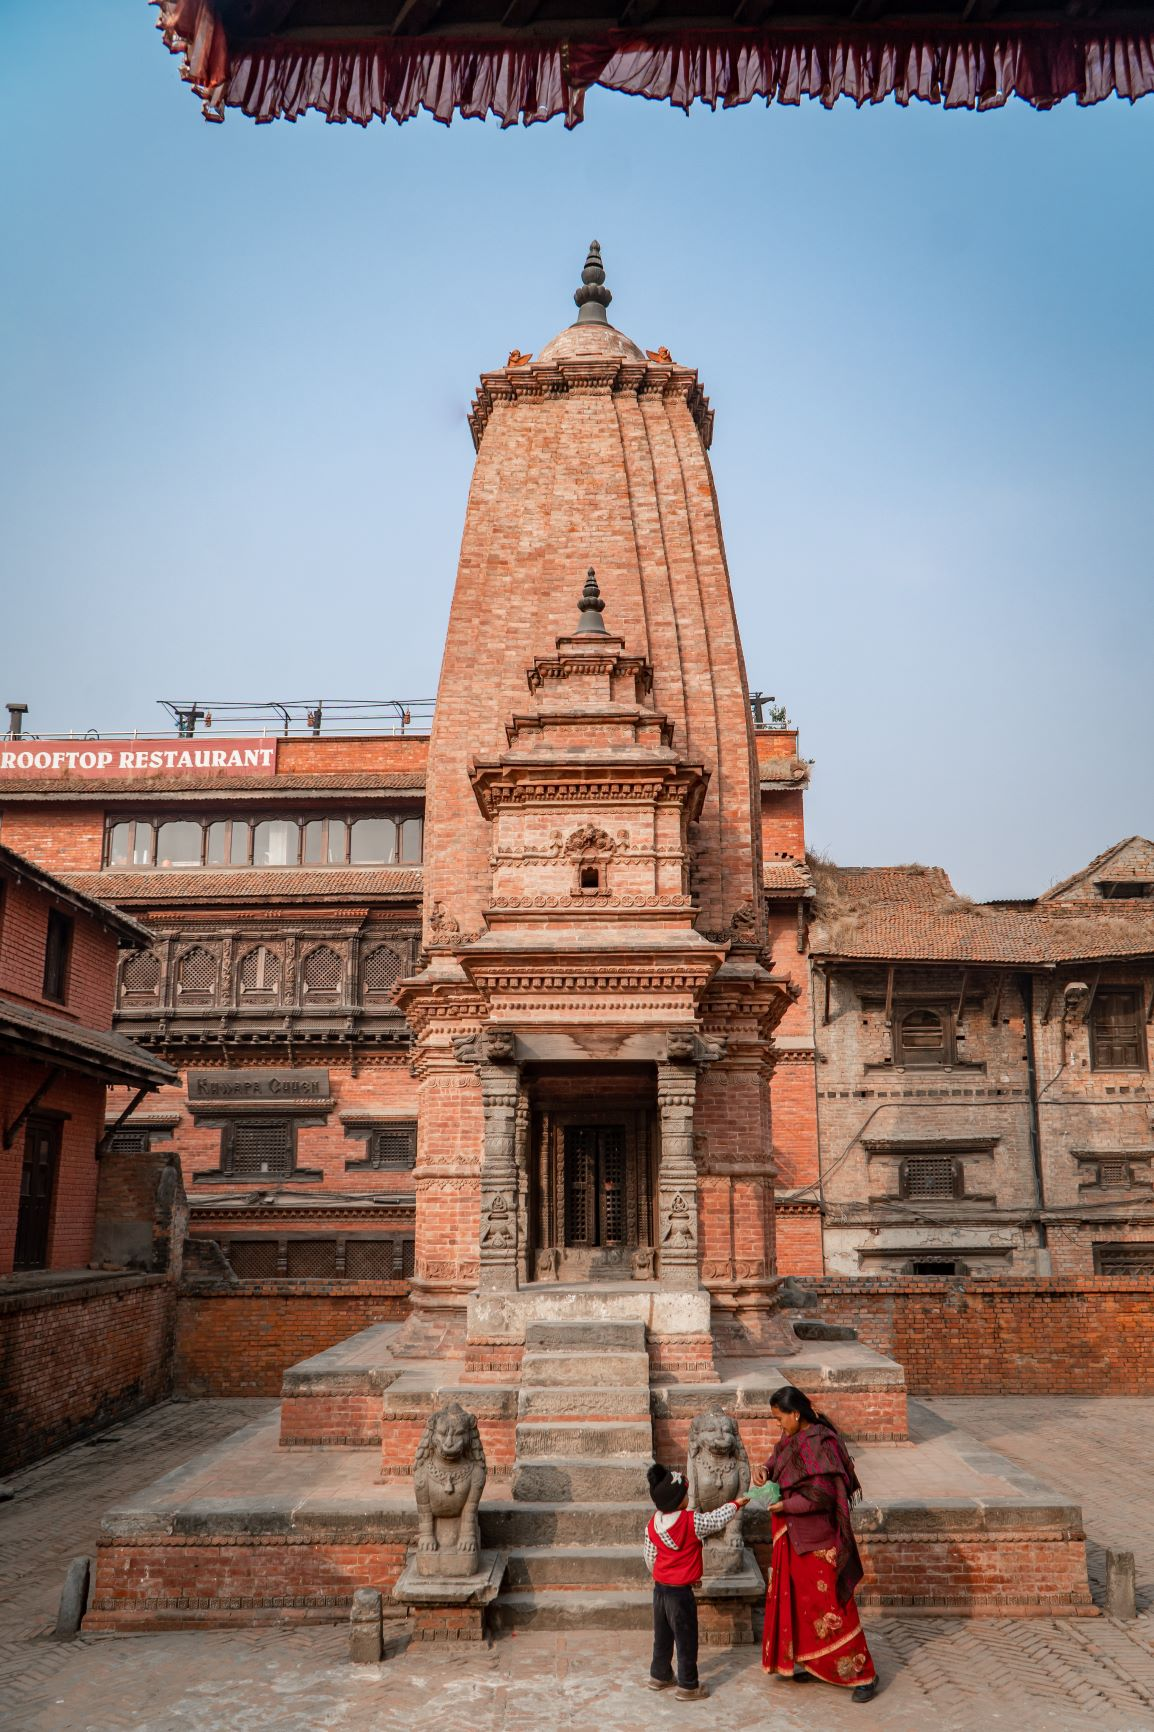 Badrinath temple; one out of the Char Dham temples of Bhaktapur image